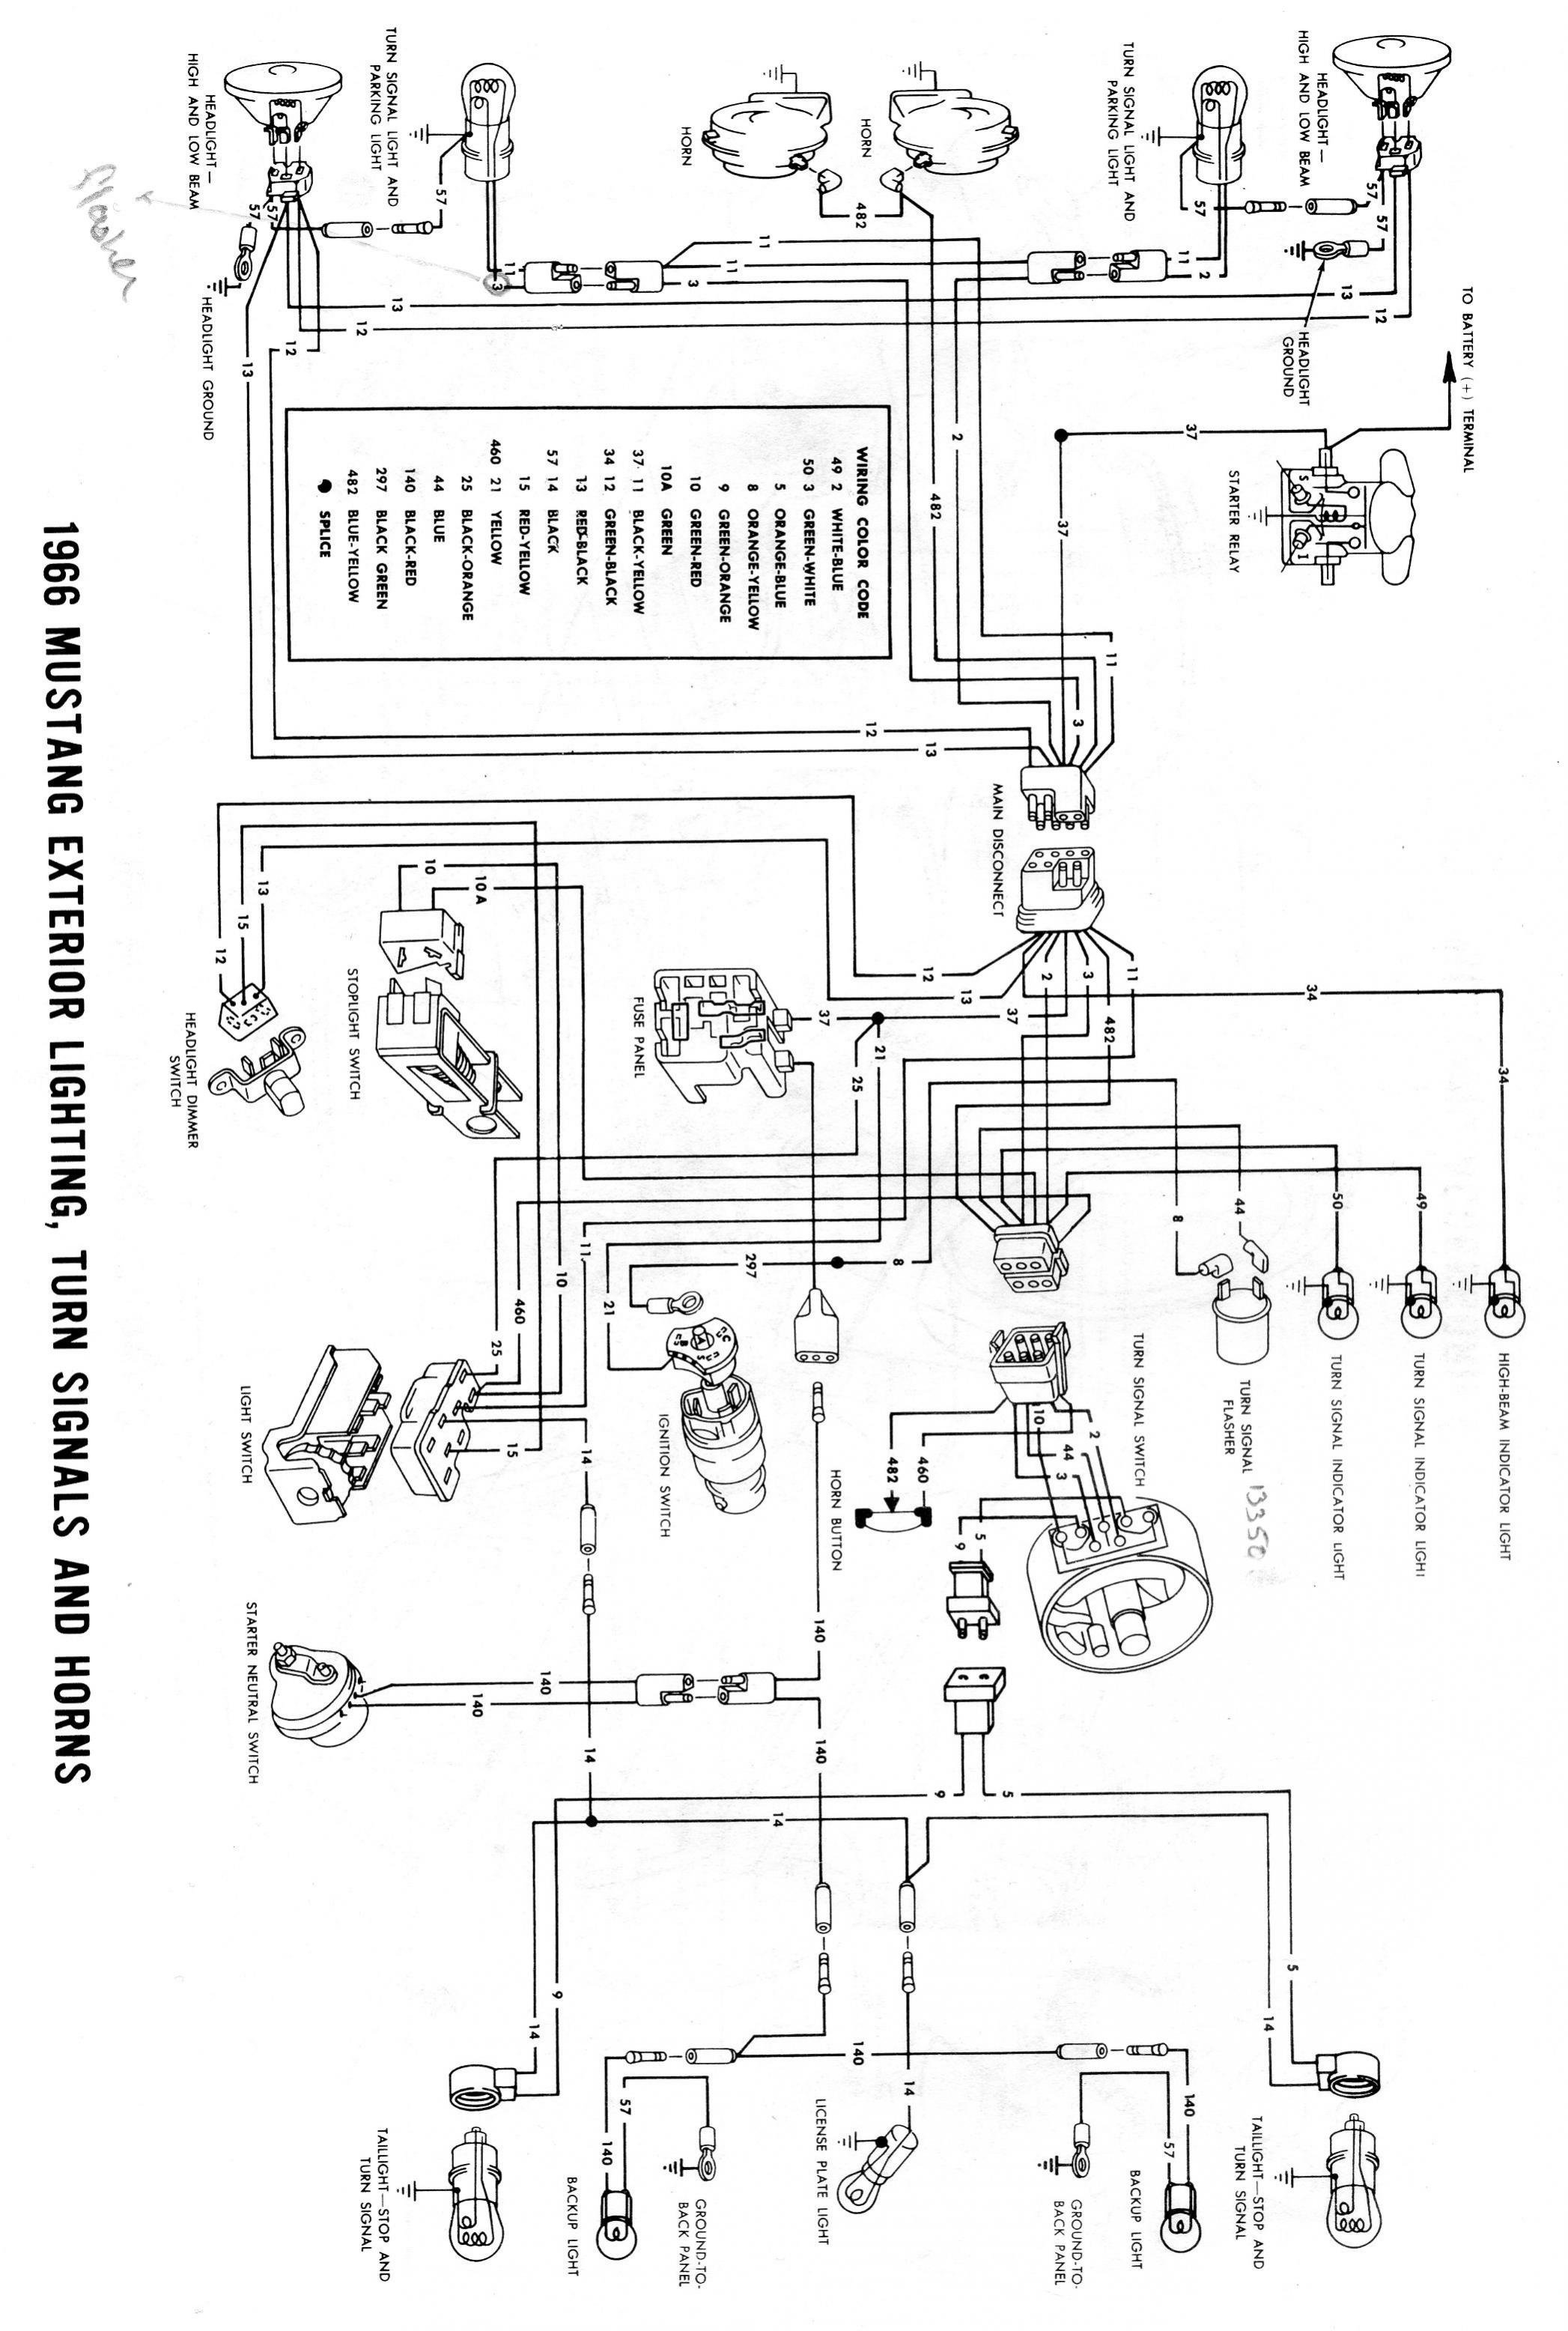 1966 Chevelle Malibu Fuse Box Diagram